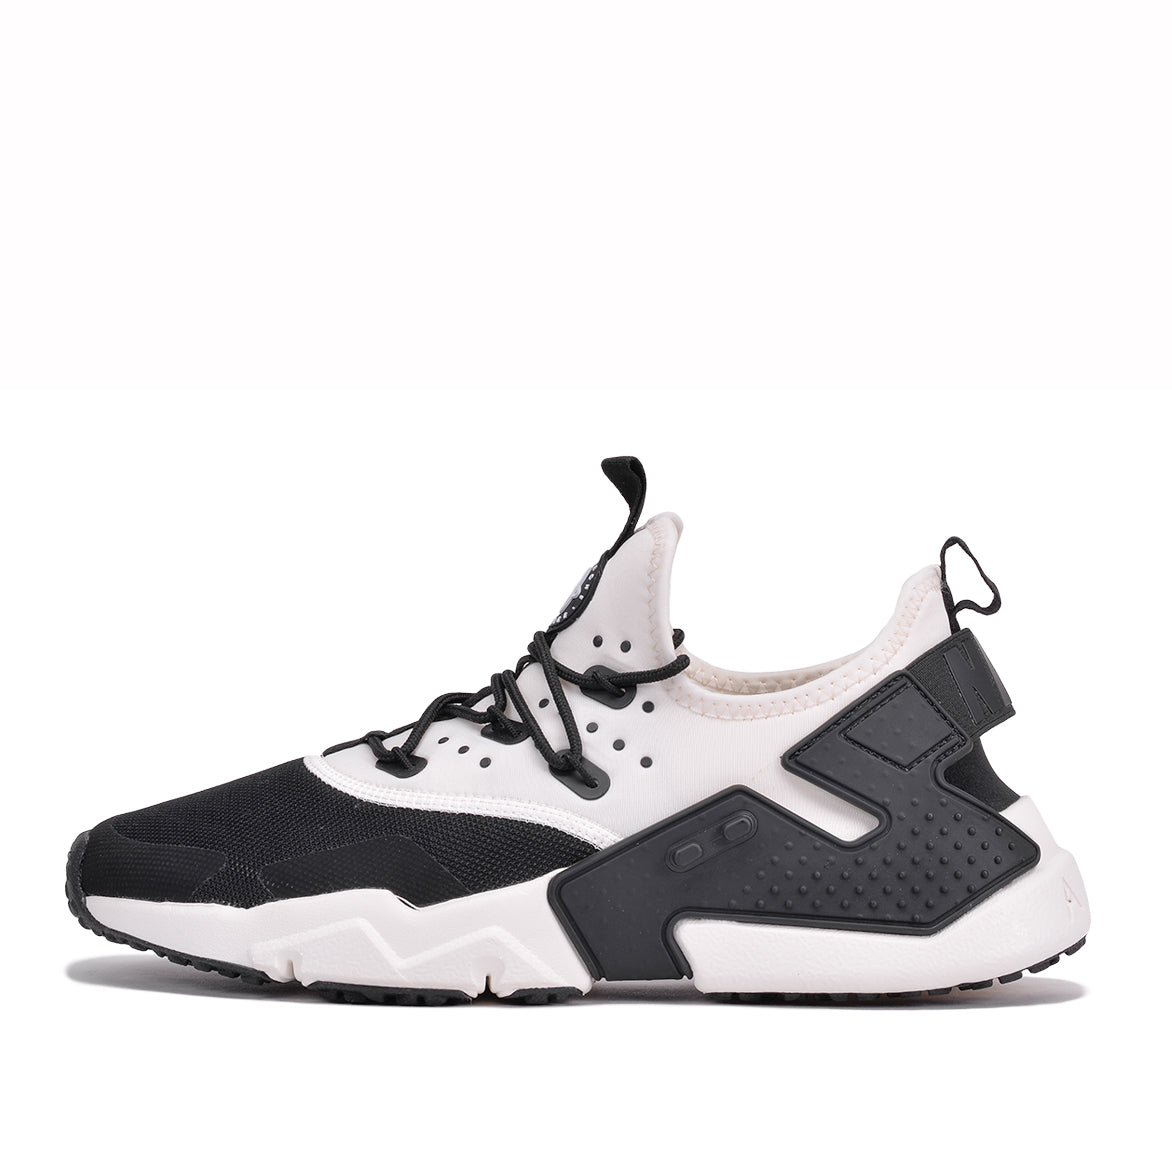 new arrivals 400c1 3323b AIR HUARACHE DRIFT - BLACK   WHITE   City Blue